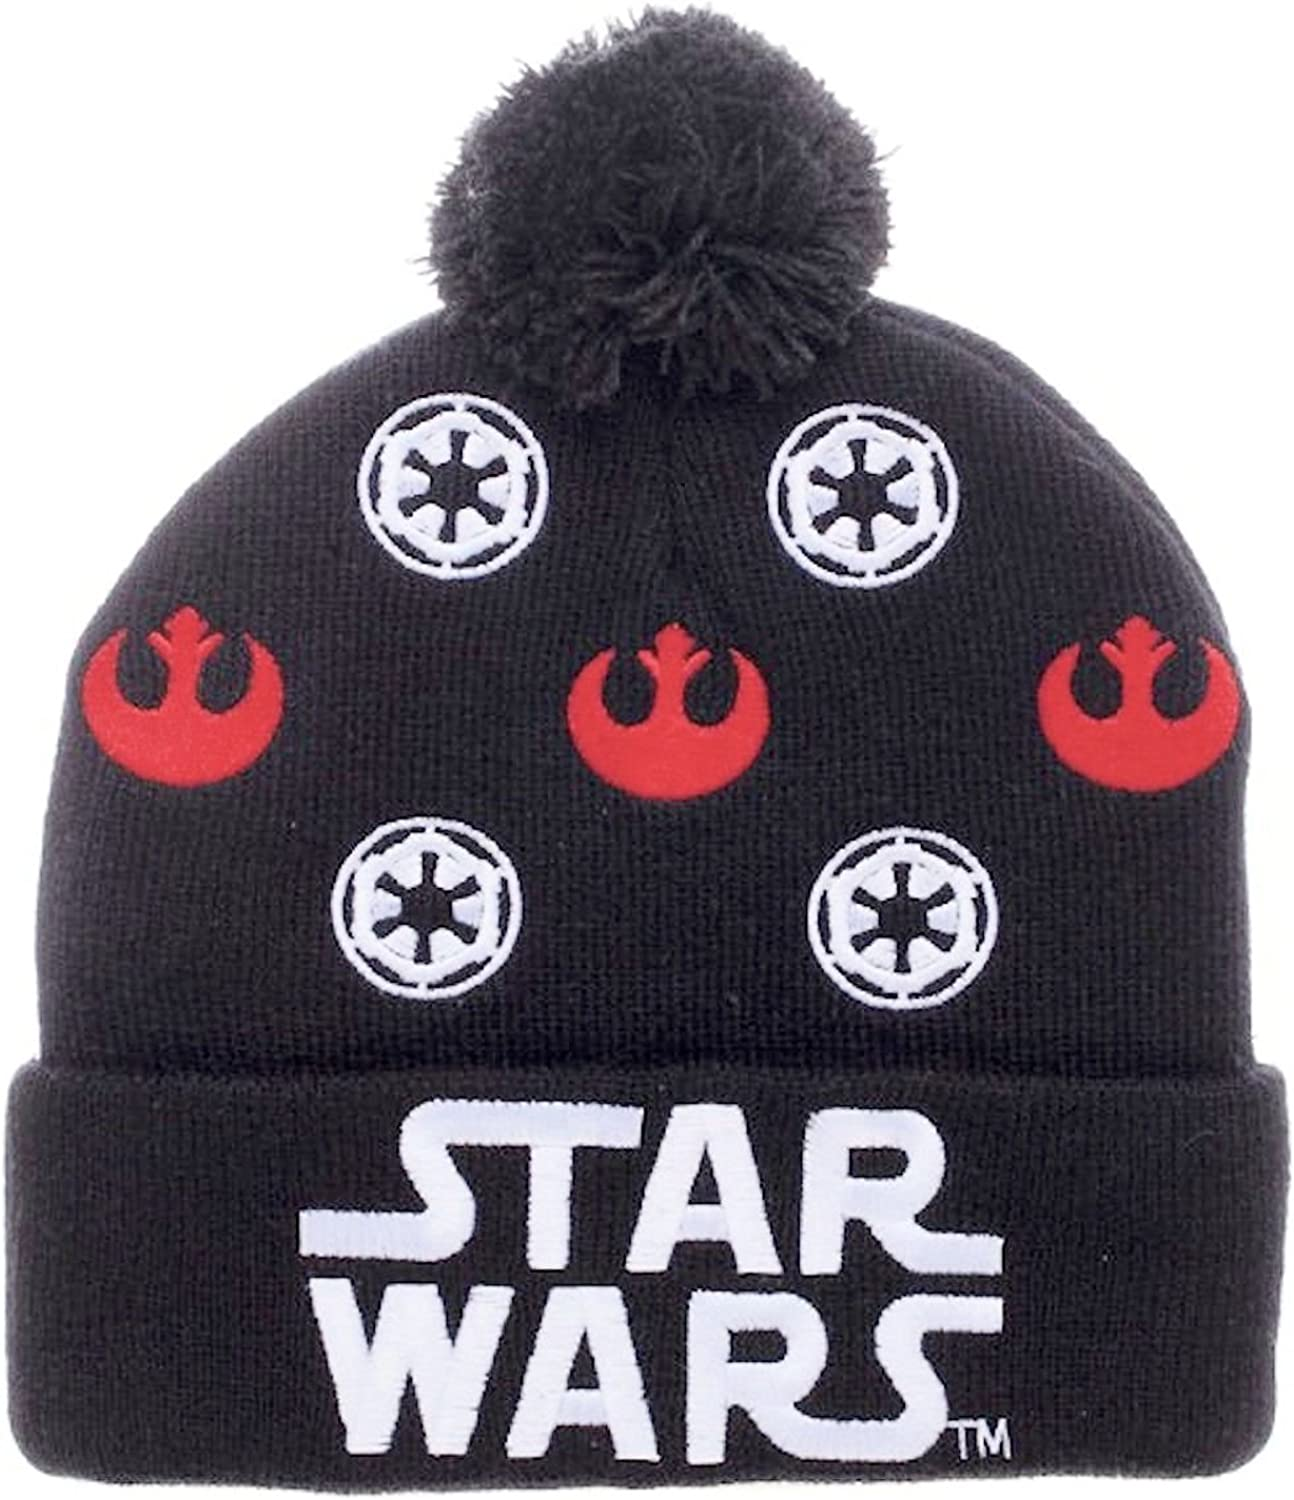 STAR WARS Black Darth Vader Boys Knit Beanie Cap Hat Disney Empire Dark Side New